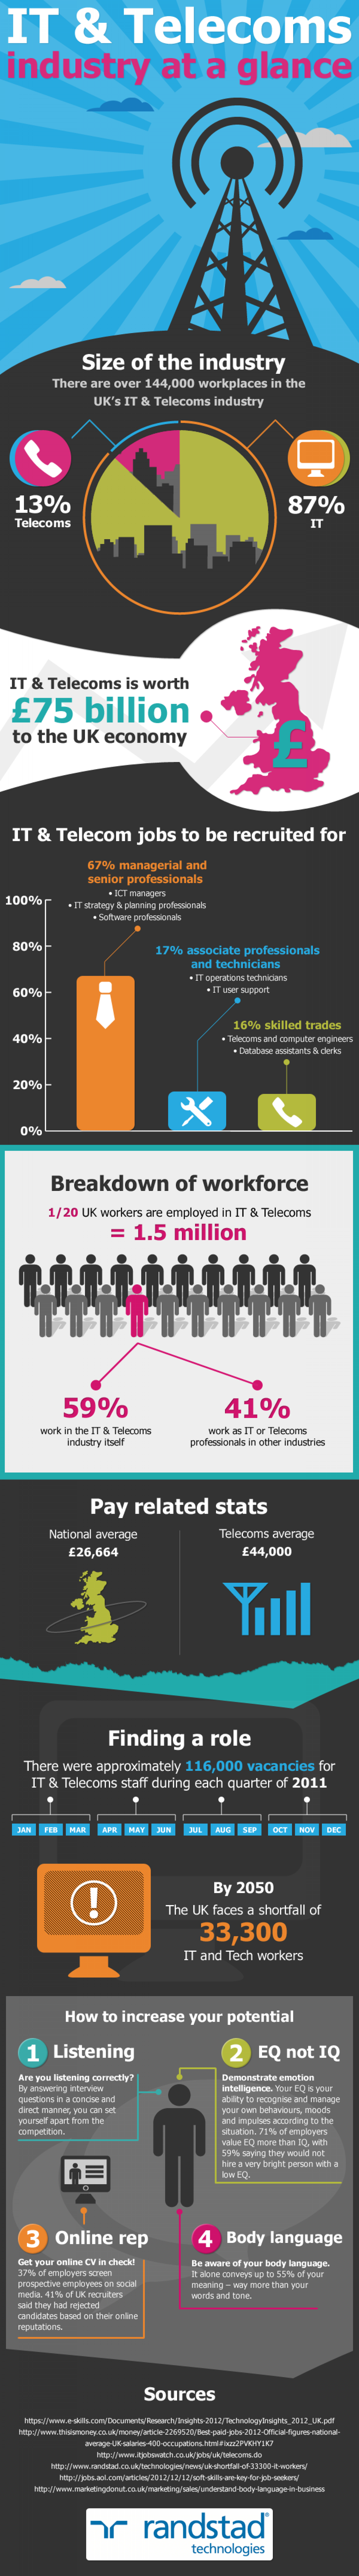 IT and Telecoms Job Industry at a Glance Infographic